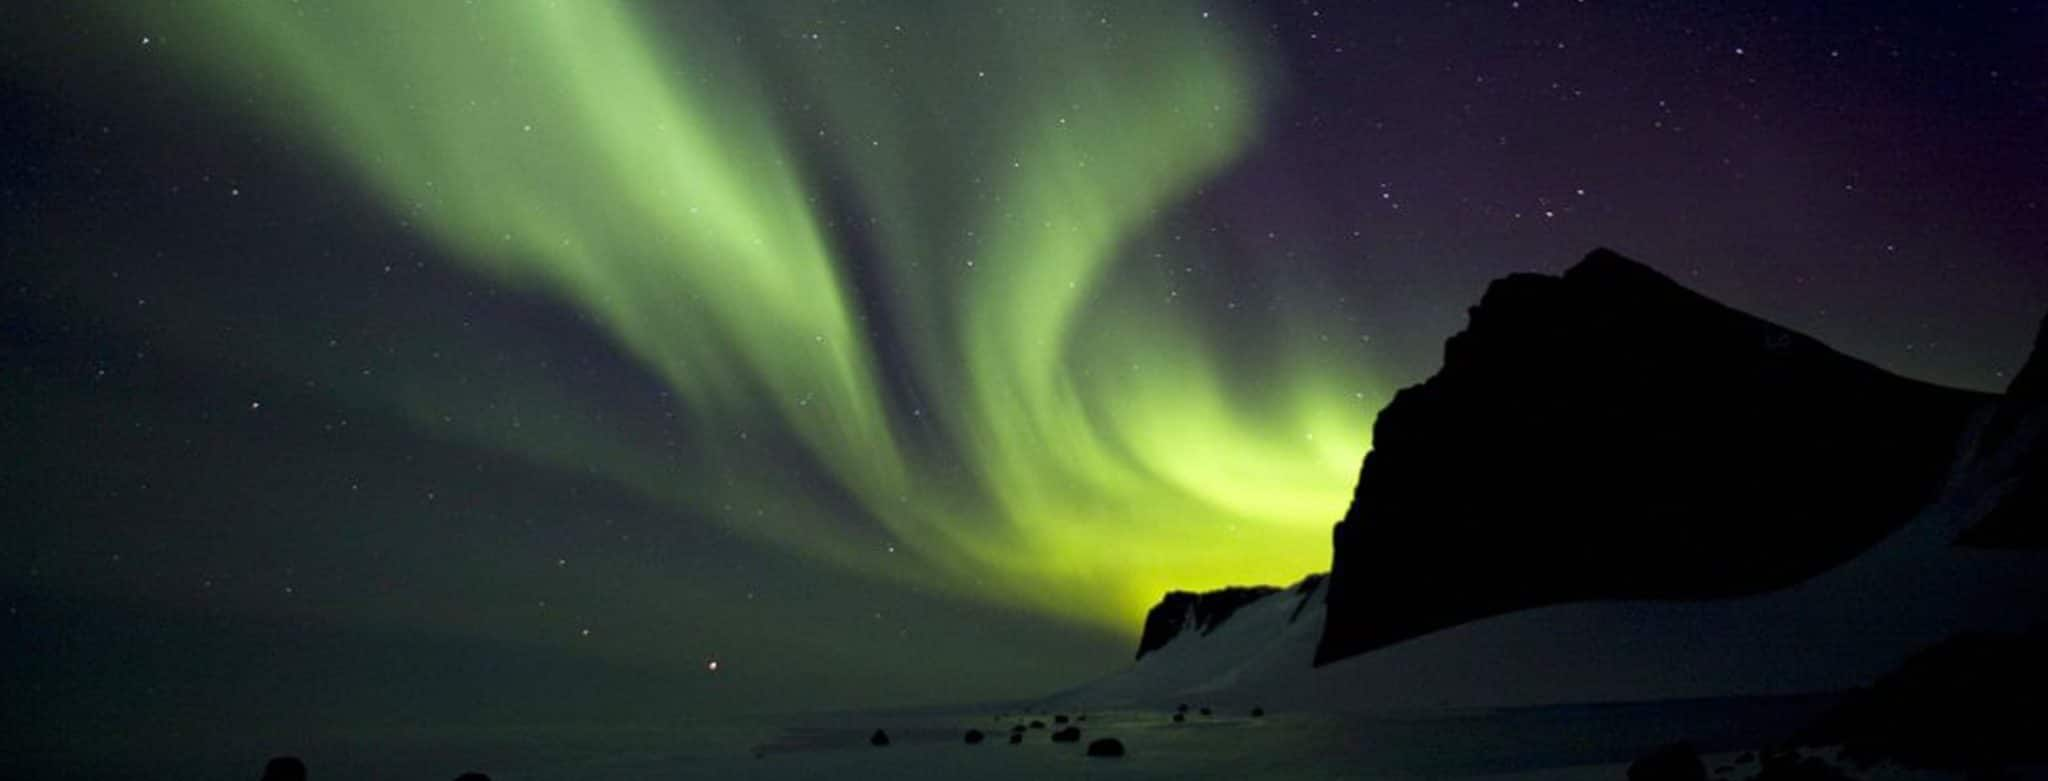 Southern lights in Antarctica